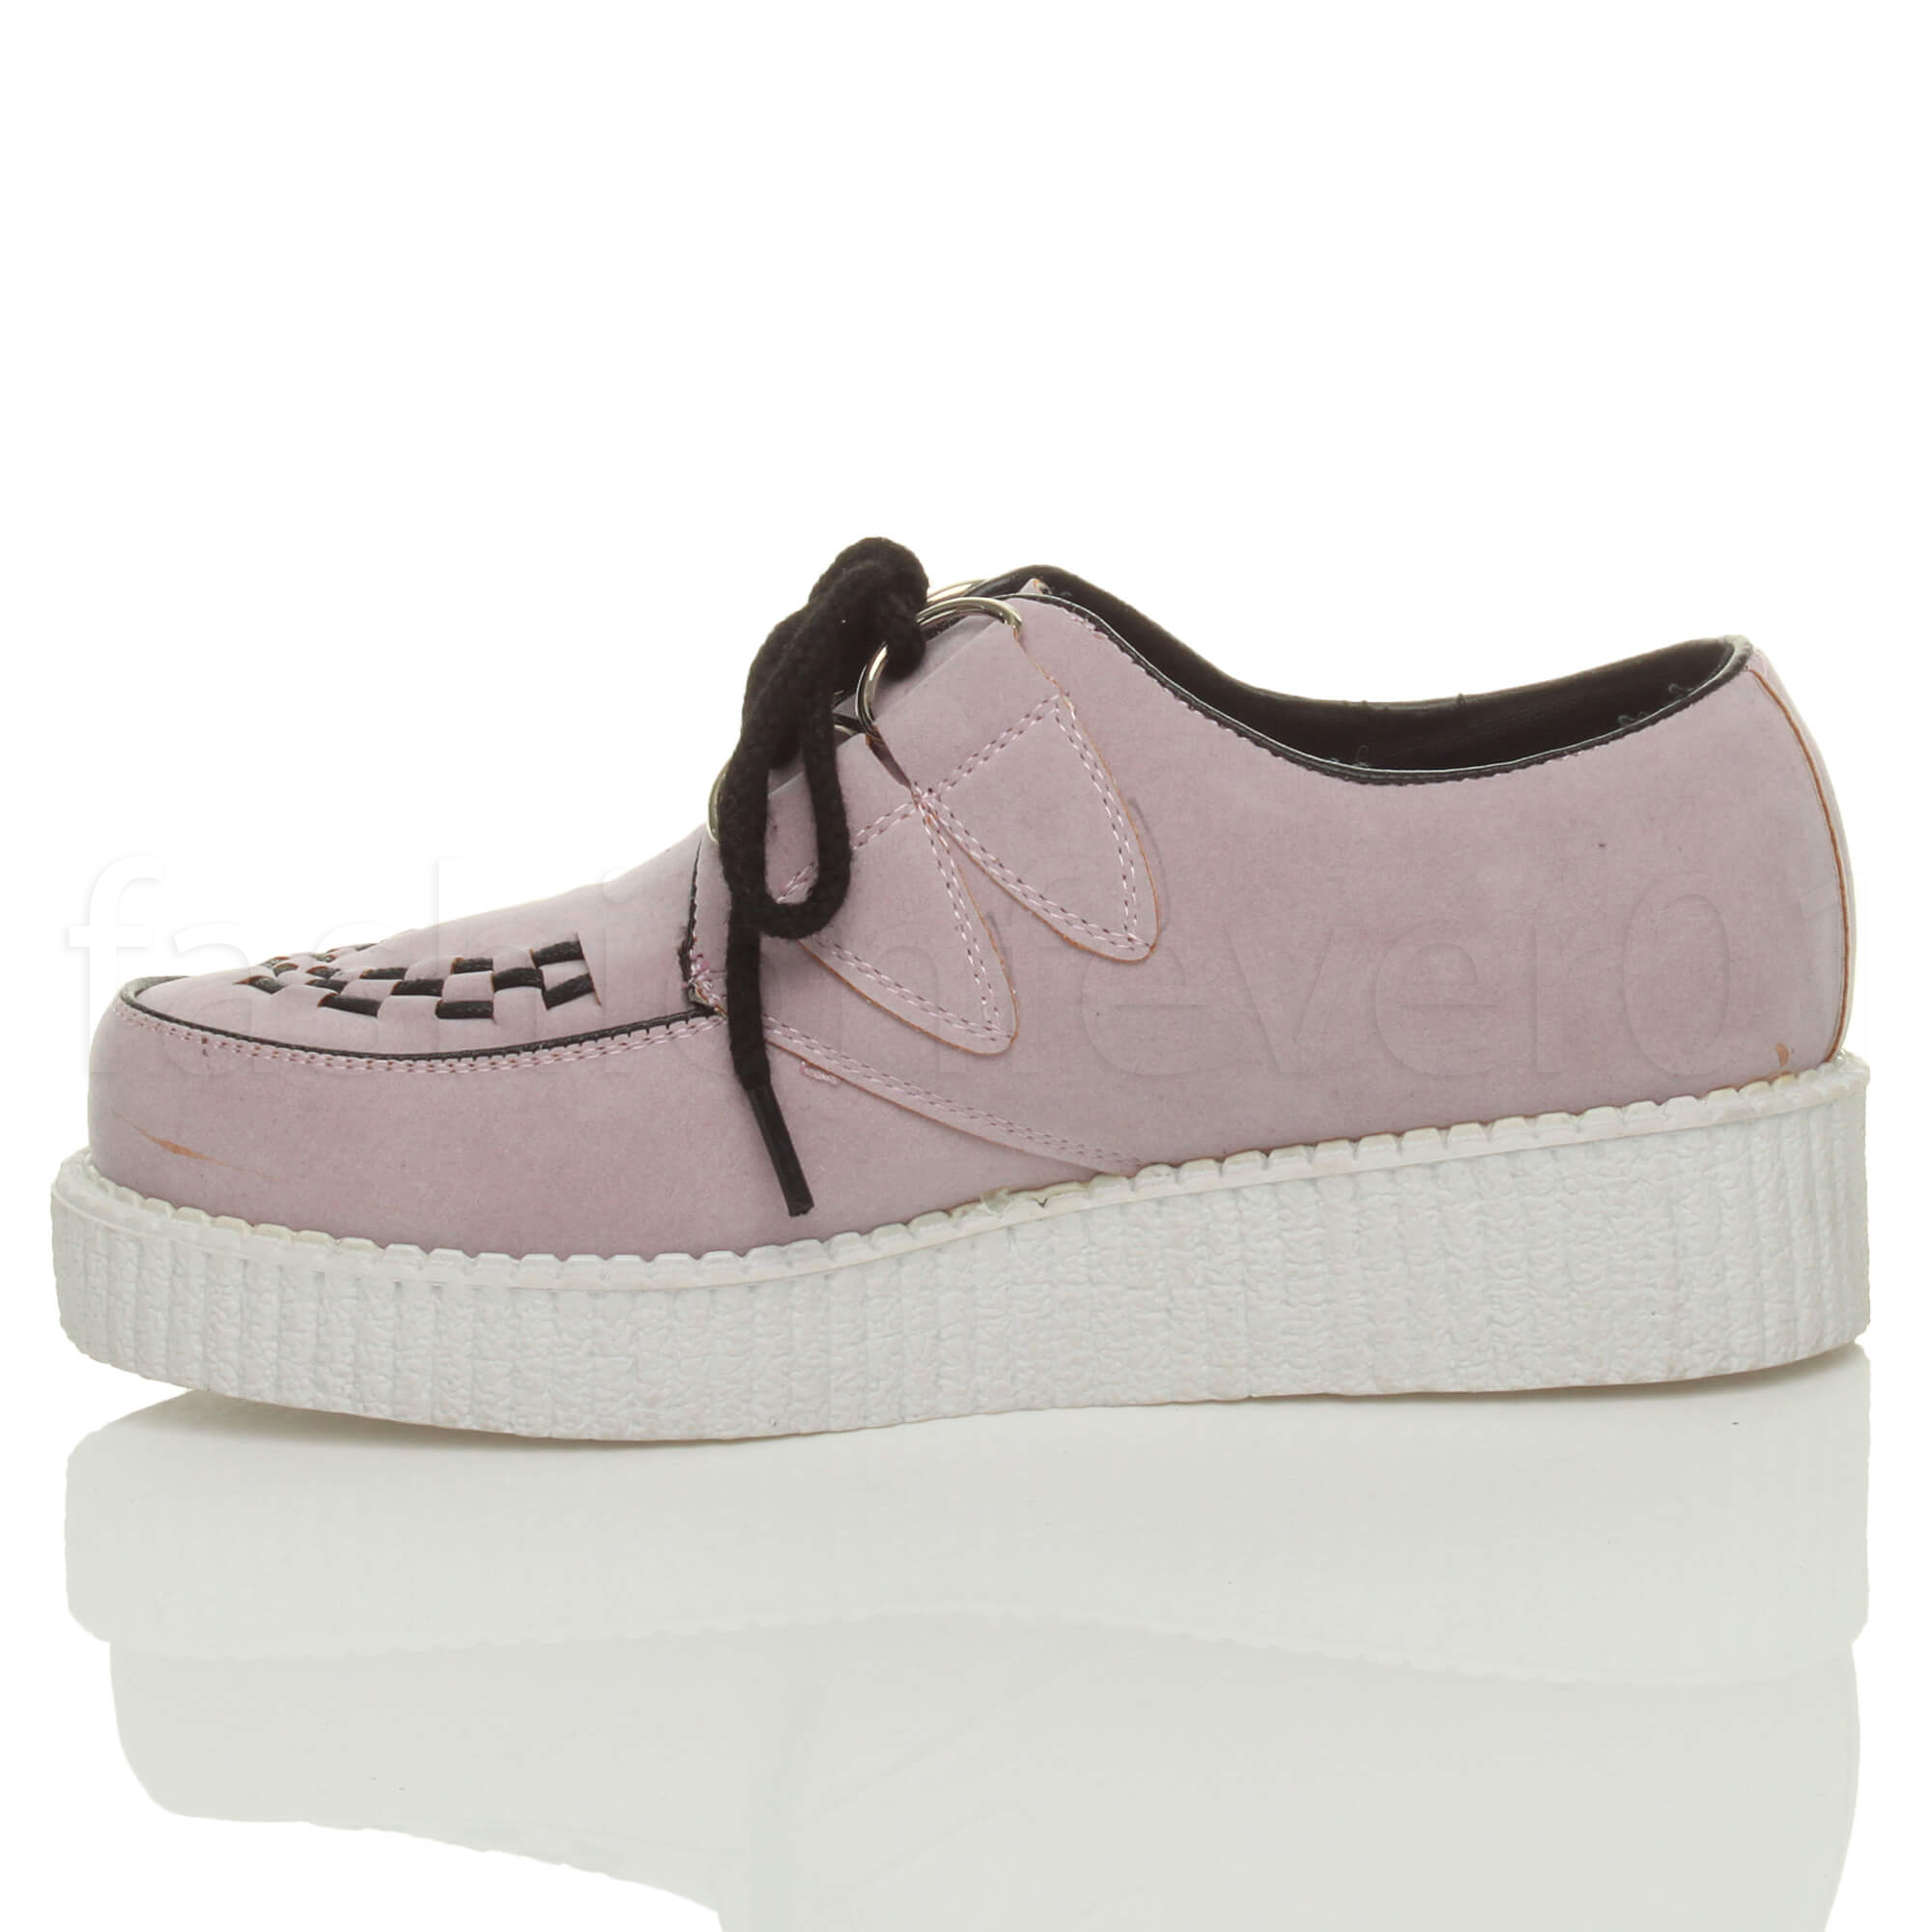 WOMENS-LADIES-FLAT-PLATFORM-FLATFORM-WEDGE-LACE-UP-PUNK-CREEPERS-SHOES-SIZE